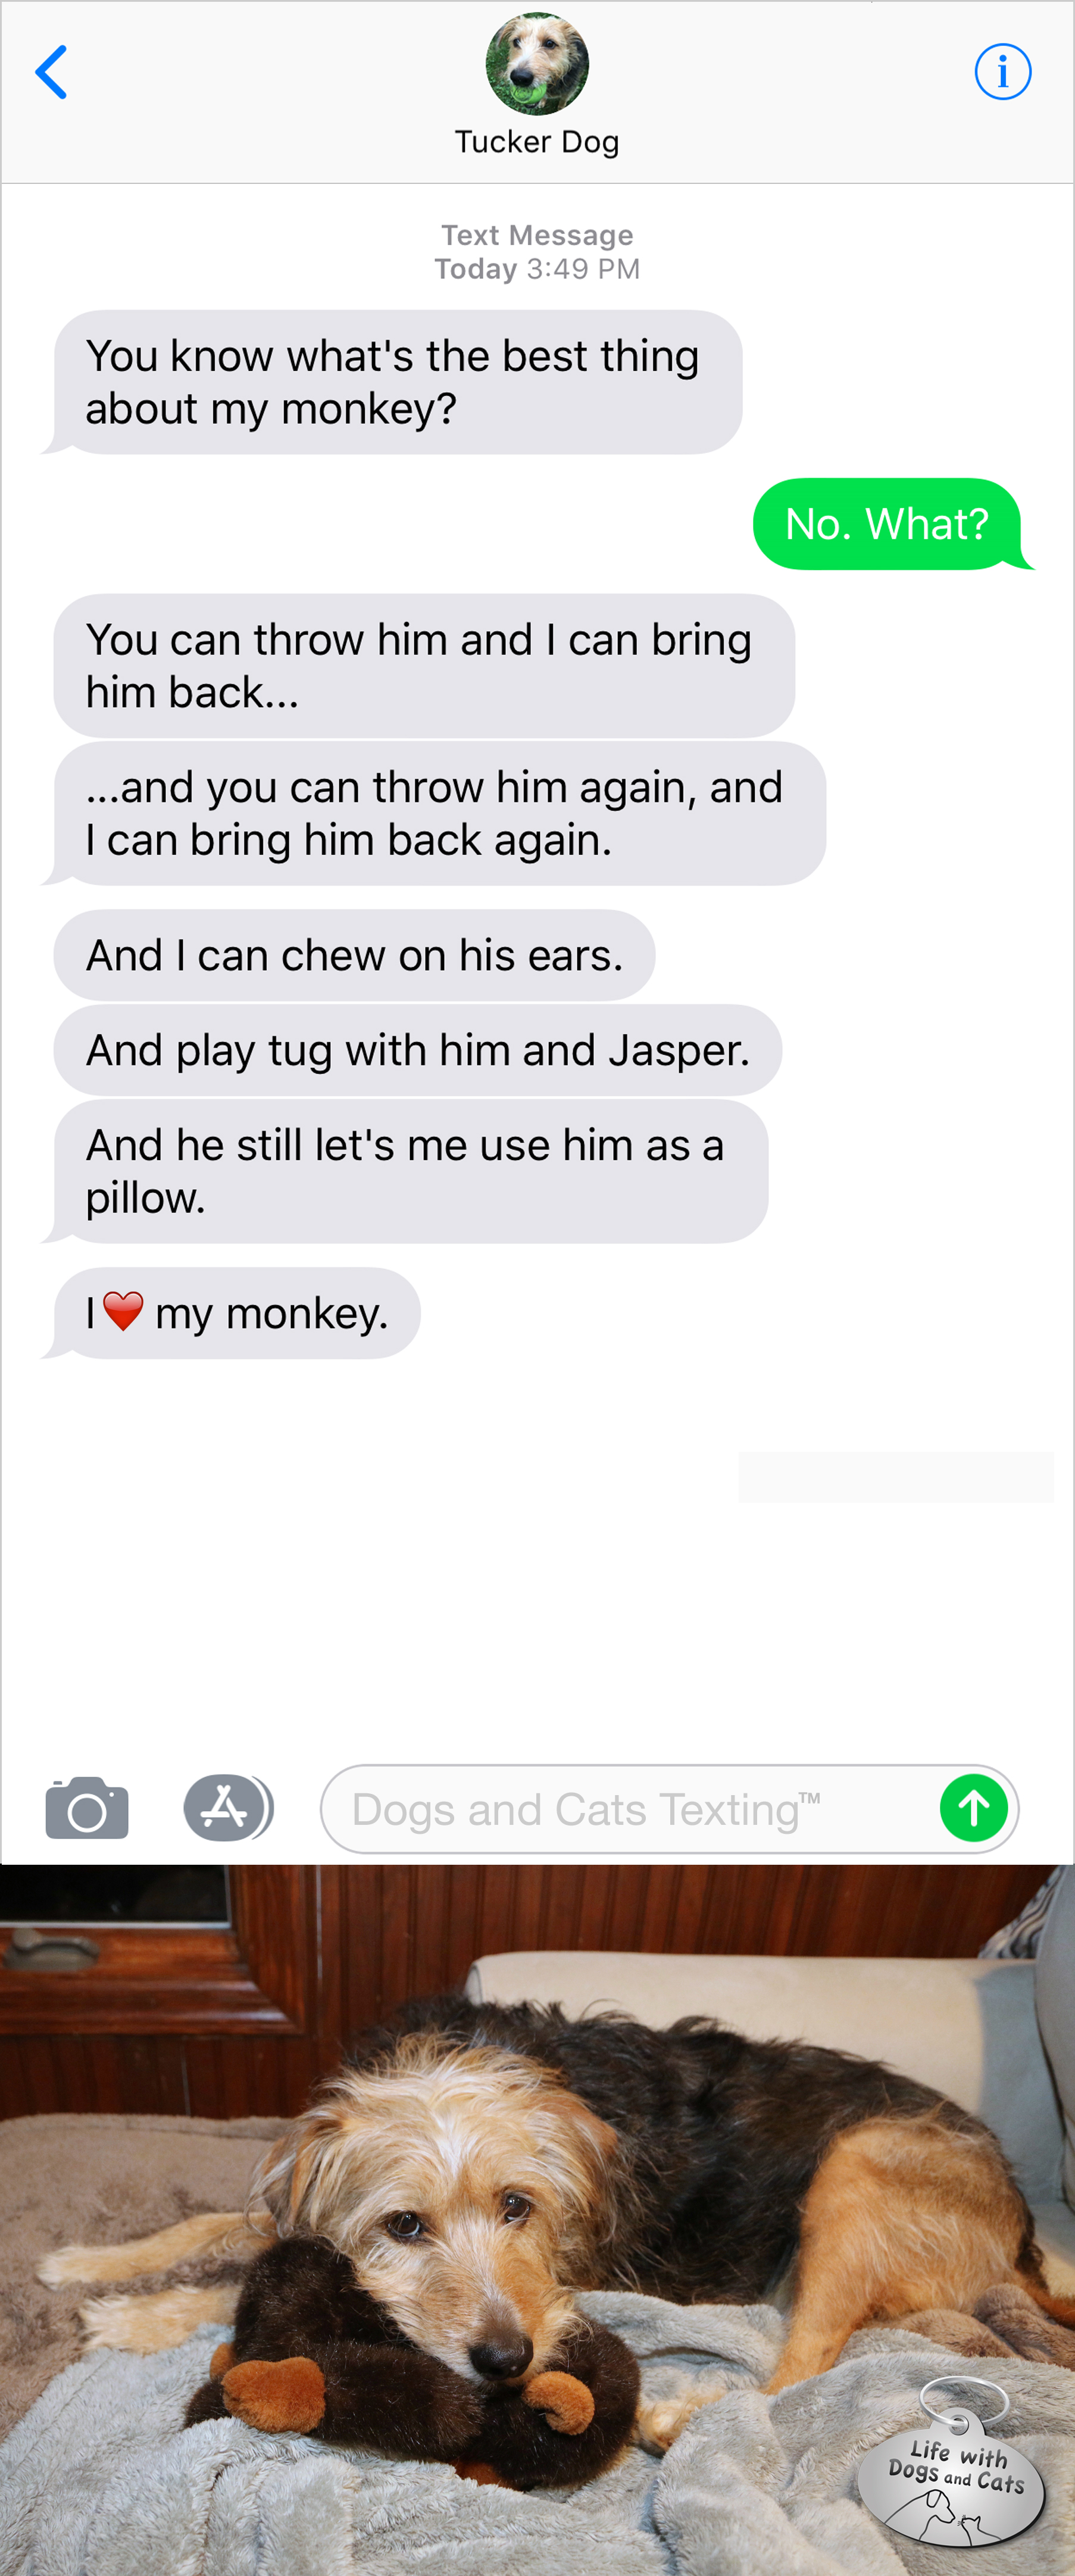 #TextFromDog You know what's the best thing about my monkey? Me: No. What? Dog: You can throw him and I can bring him back... and he still let's me use him as a pillow!